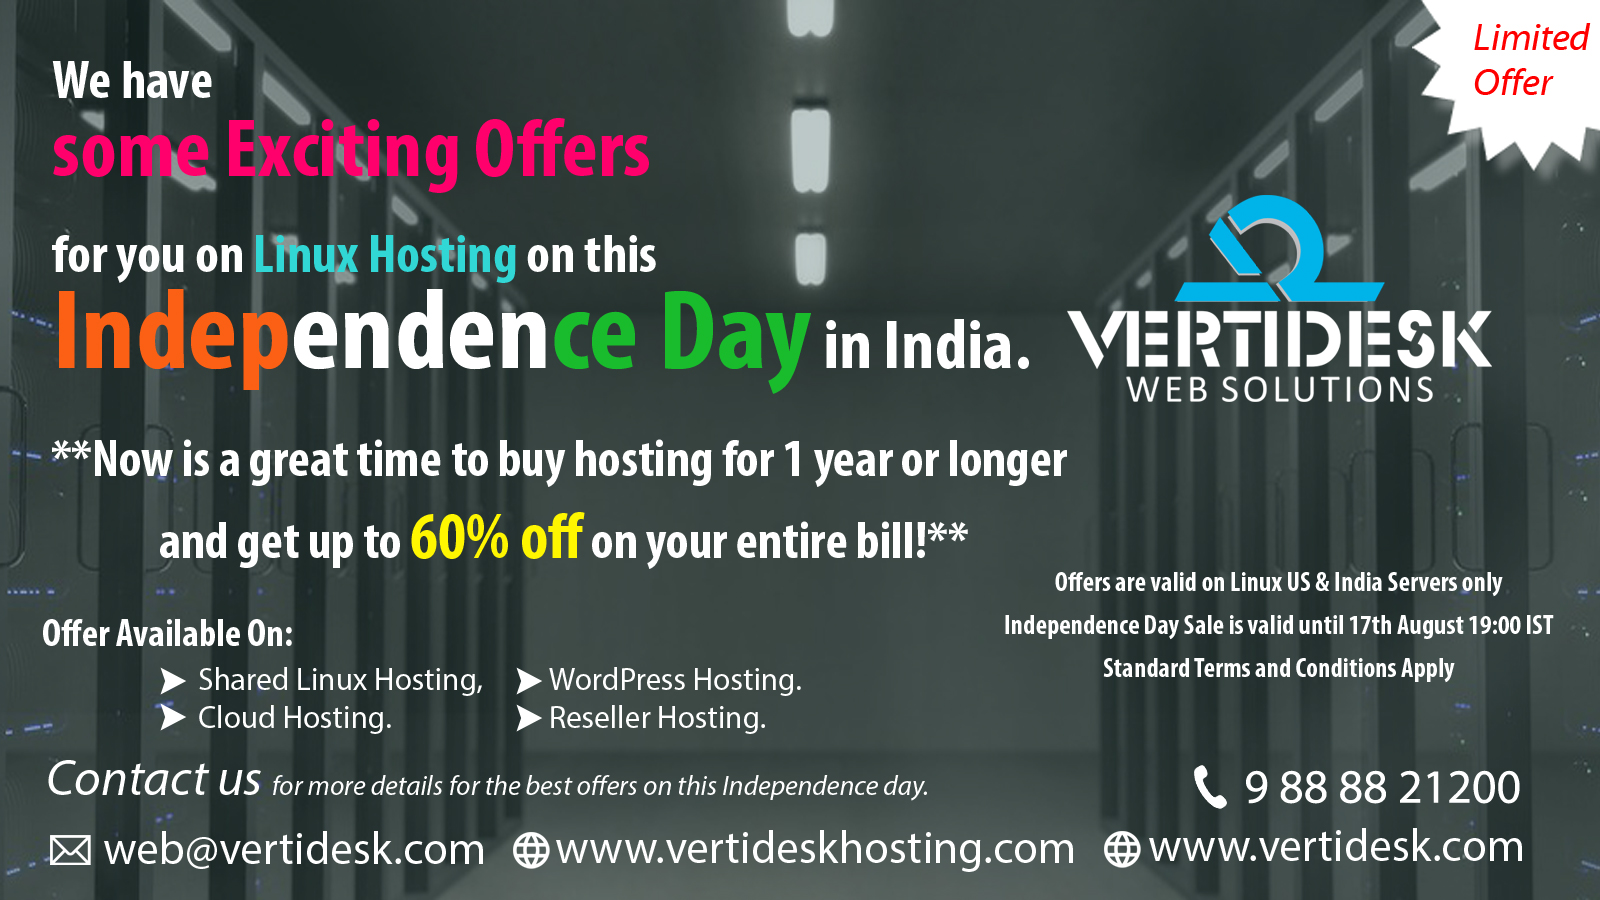 Independence Day offer on Linux Hosting, Banner